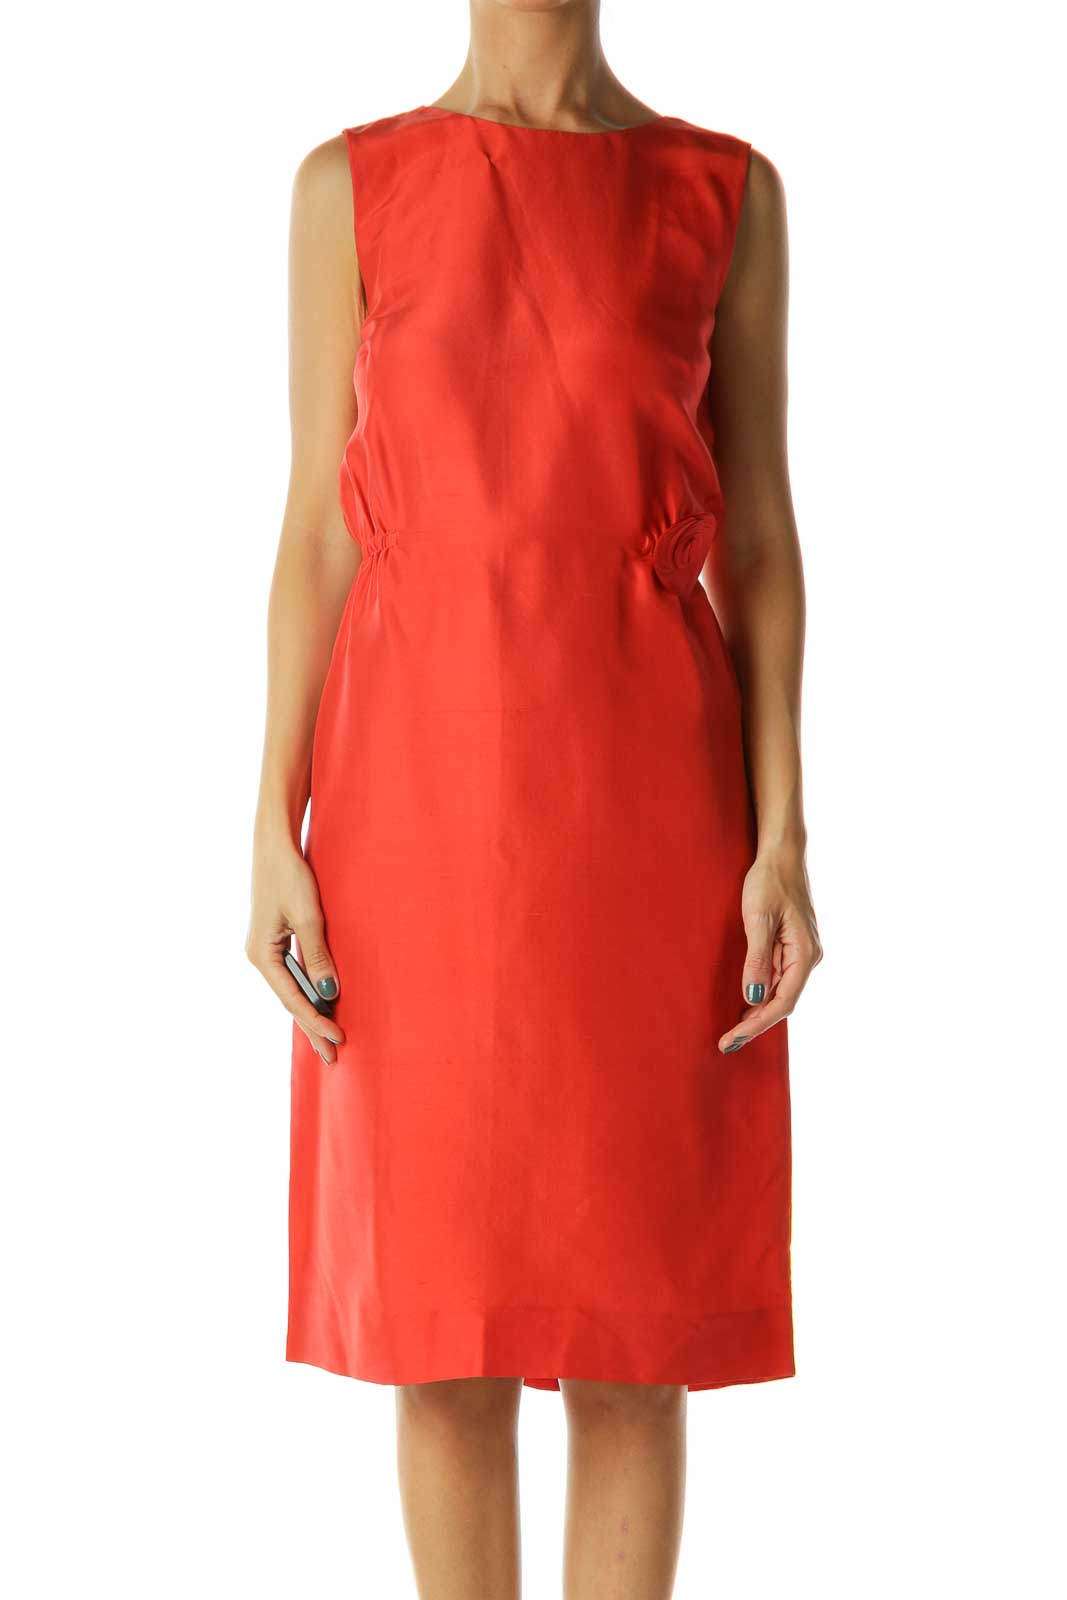 Red Sleeveless Dress Front